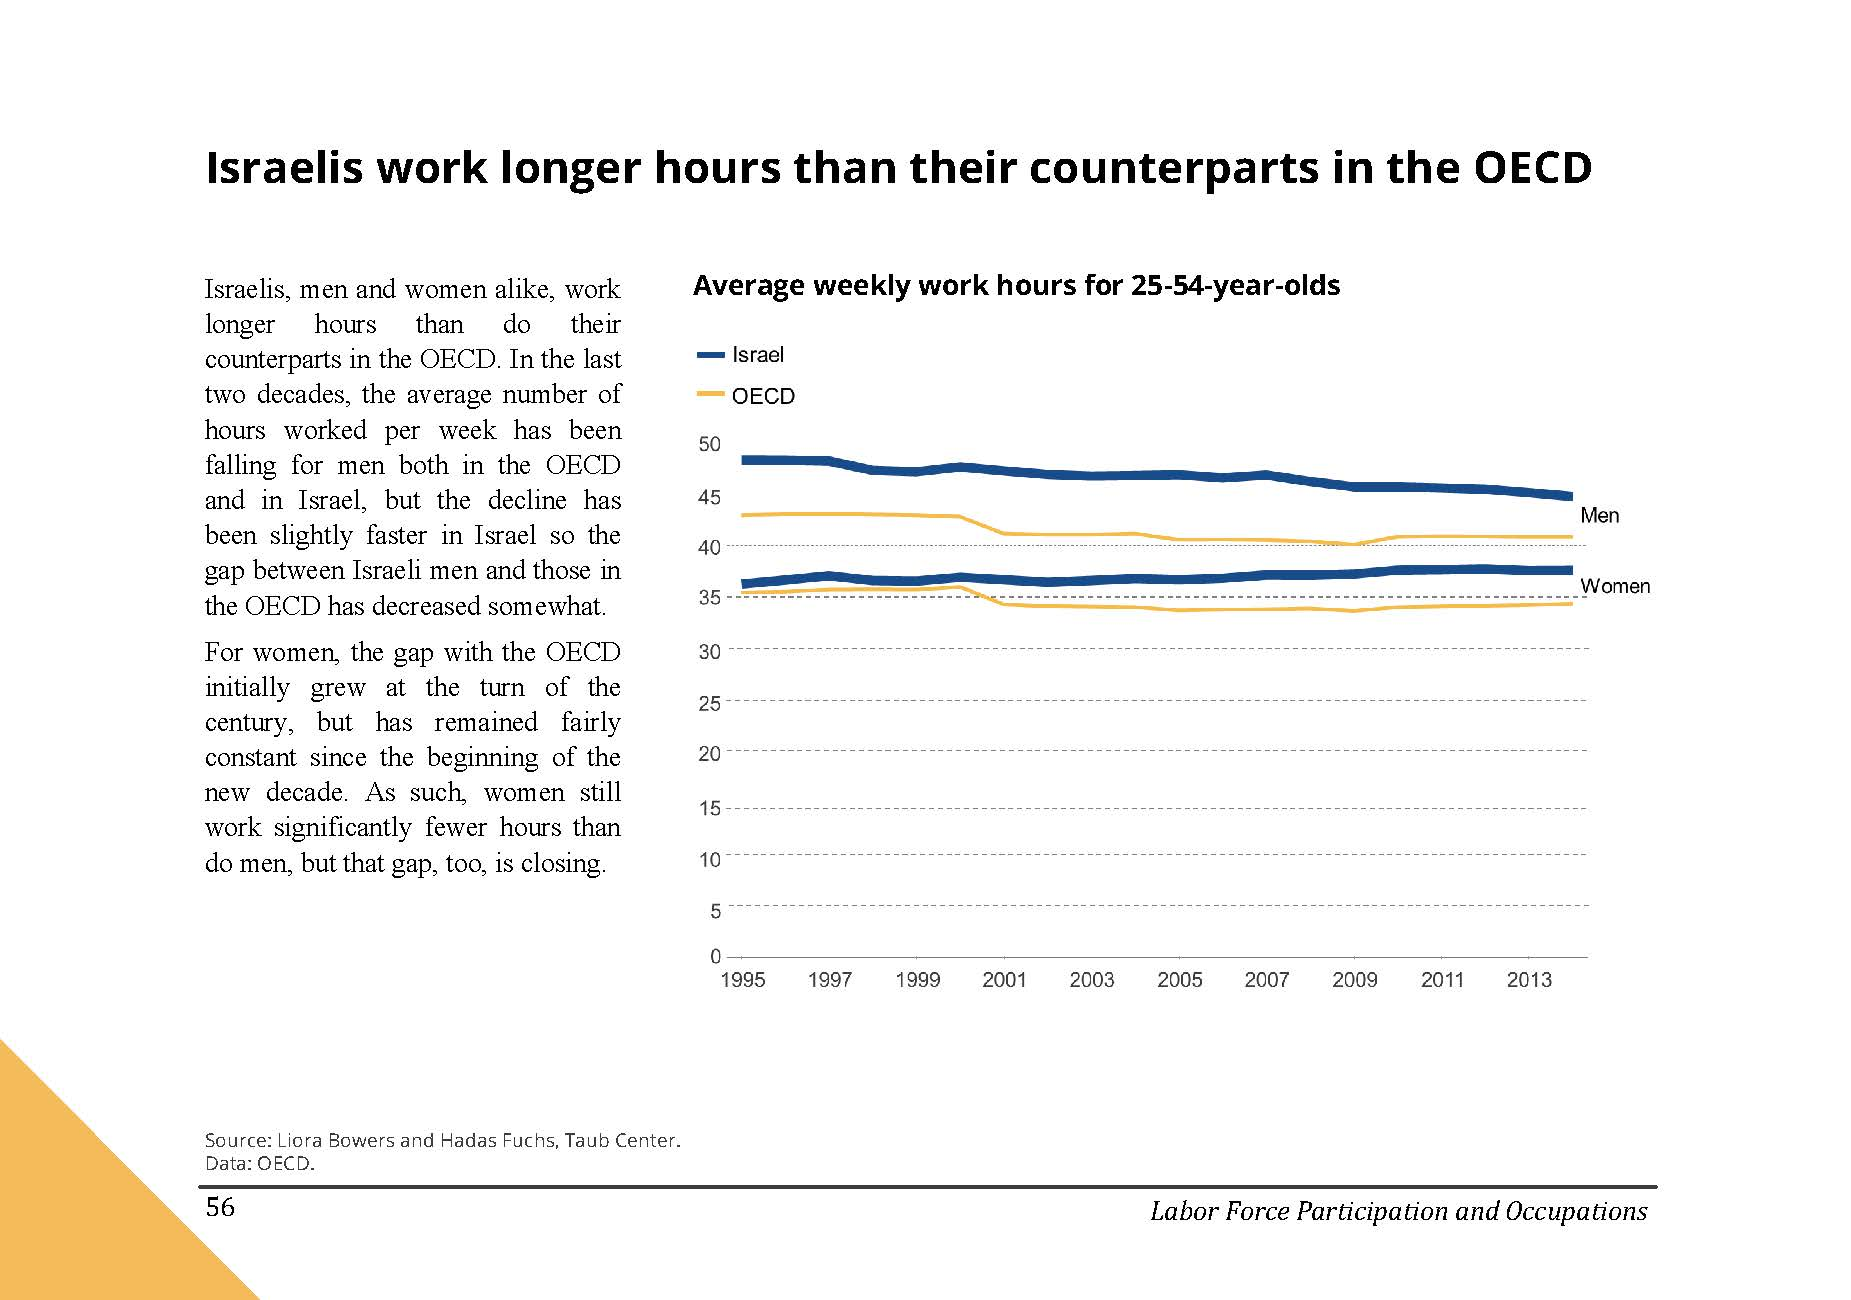 Israelis work longer hours than their counterparts in the OECD